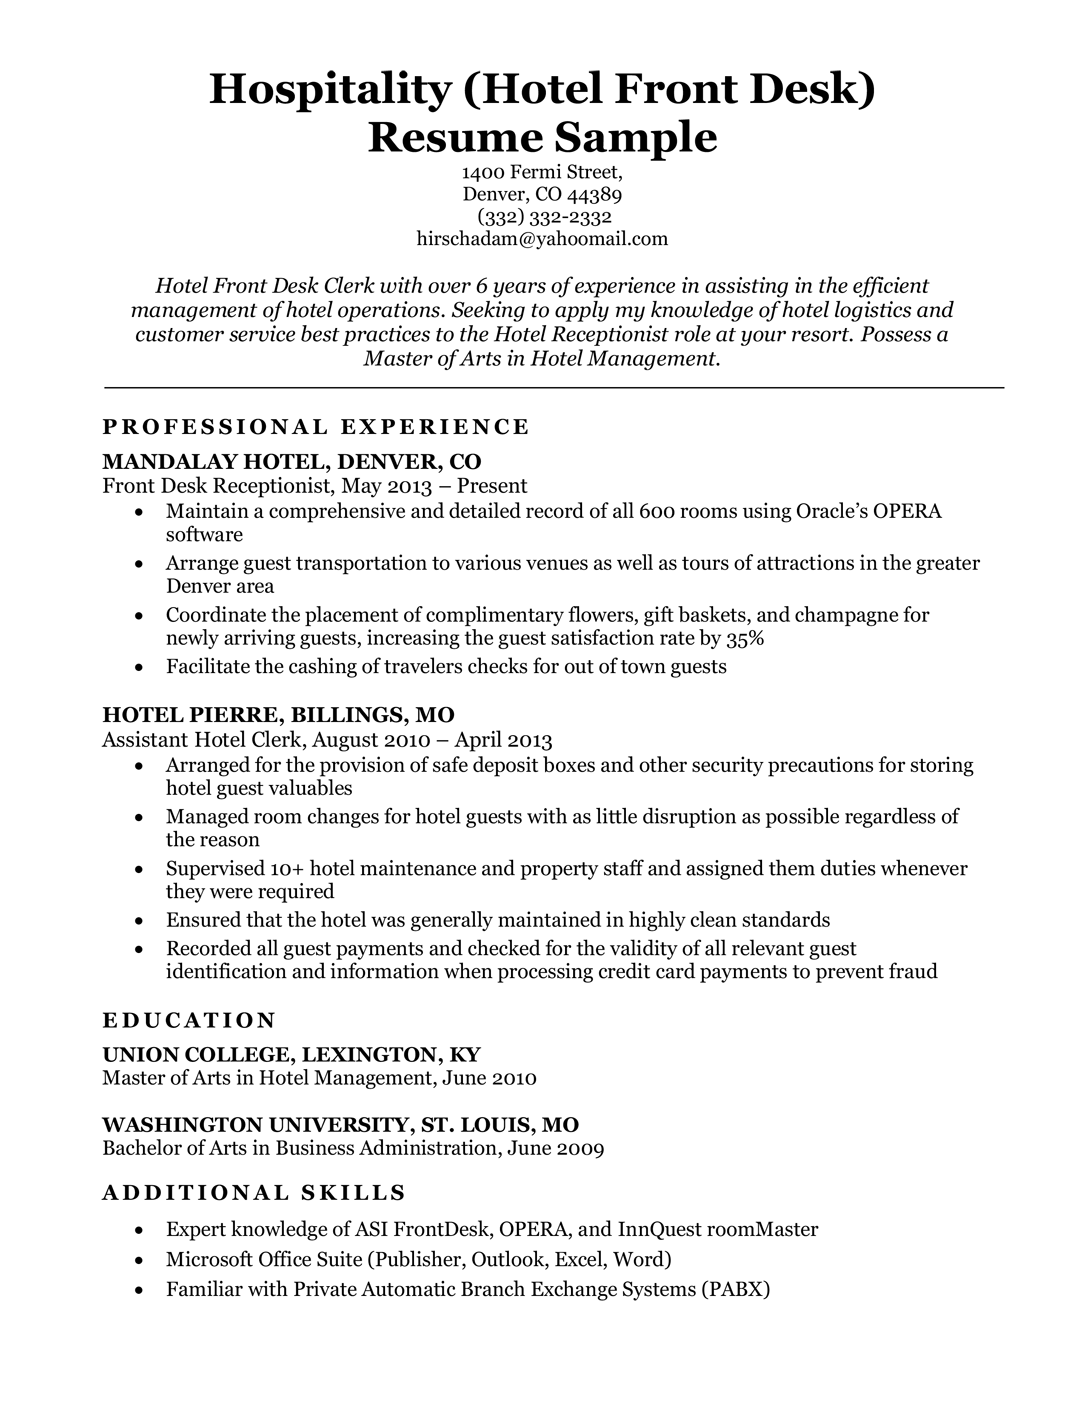 Hotel front desk resume sample